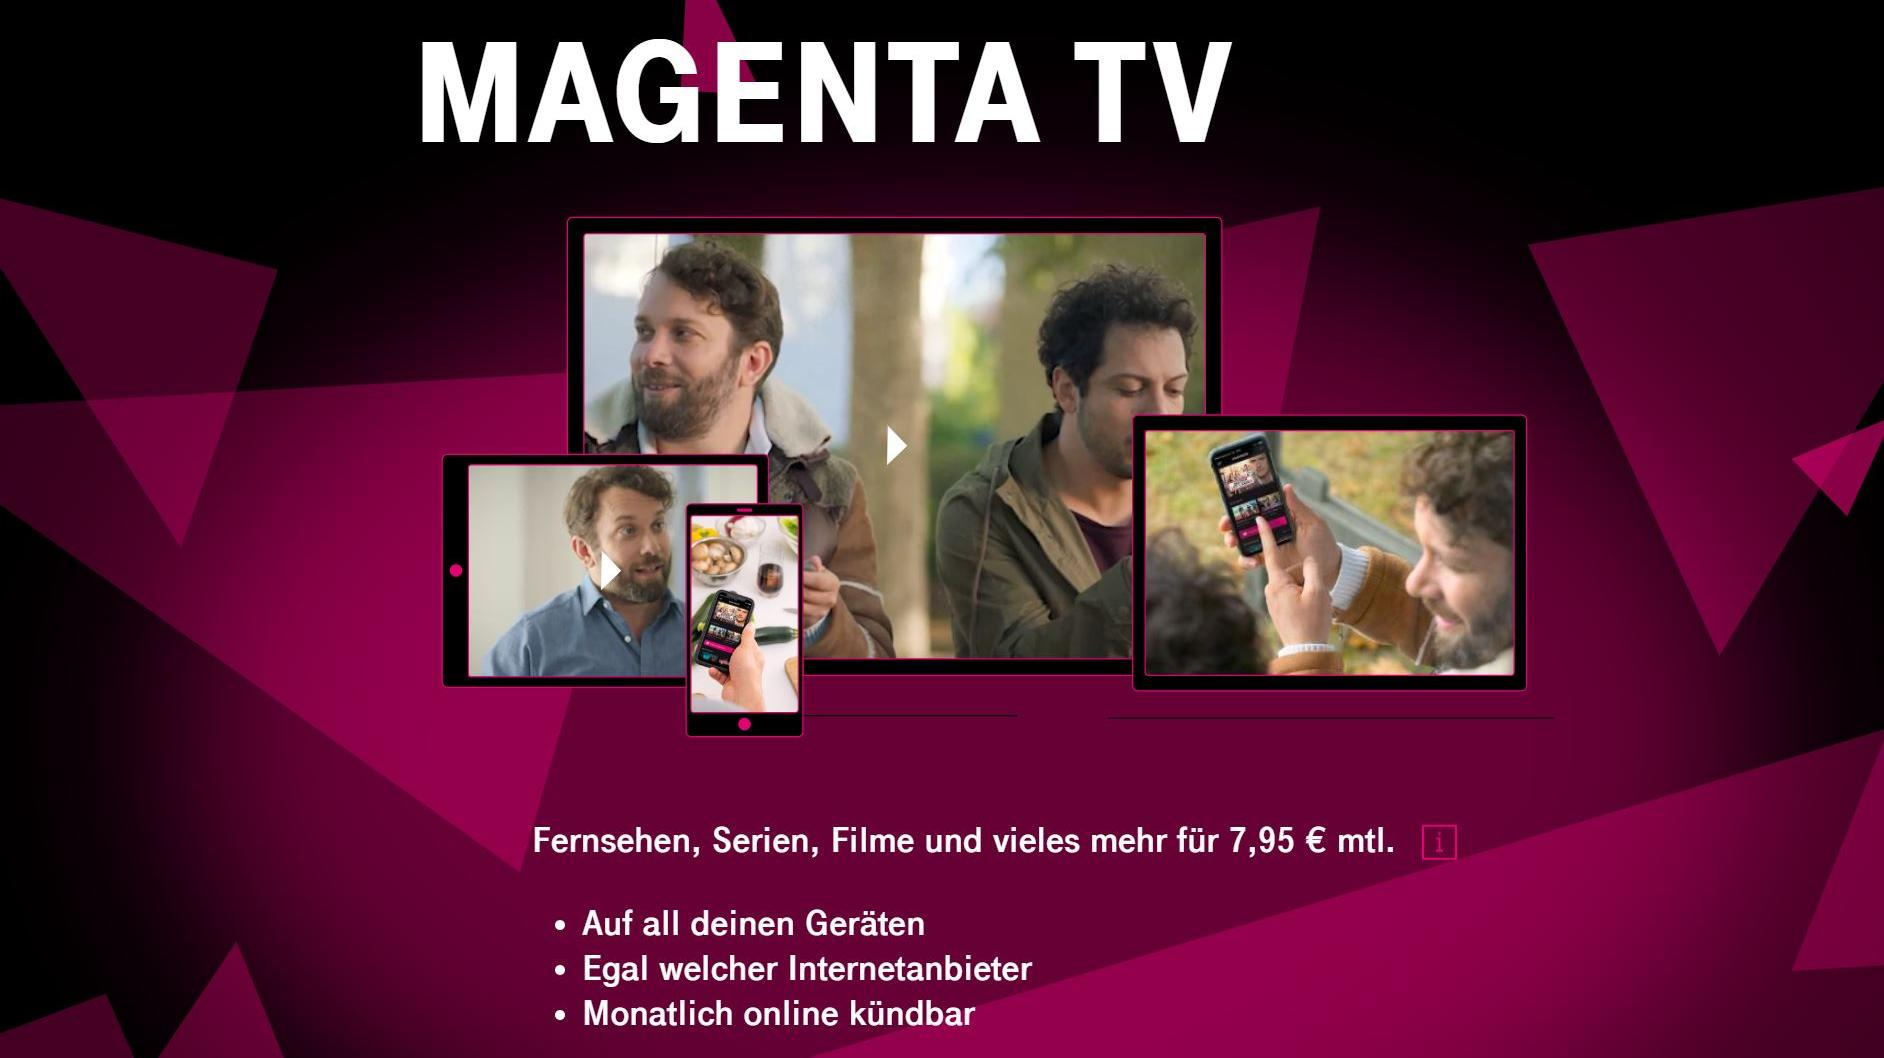 umweg ber telekom kundencenter so k ndigen sie das magentatv abo wieder. Black Bedroom Furniture Sets. Home Design Ideas